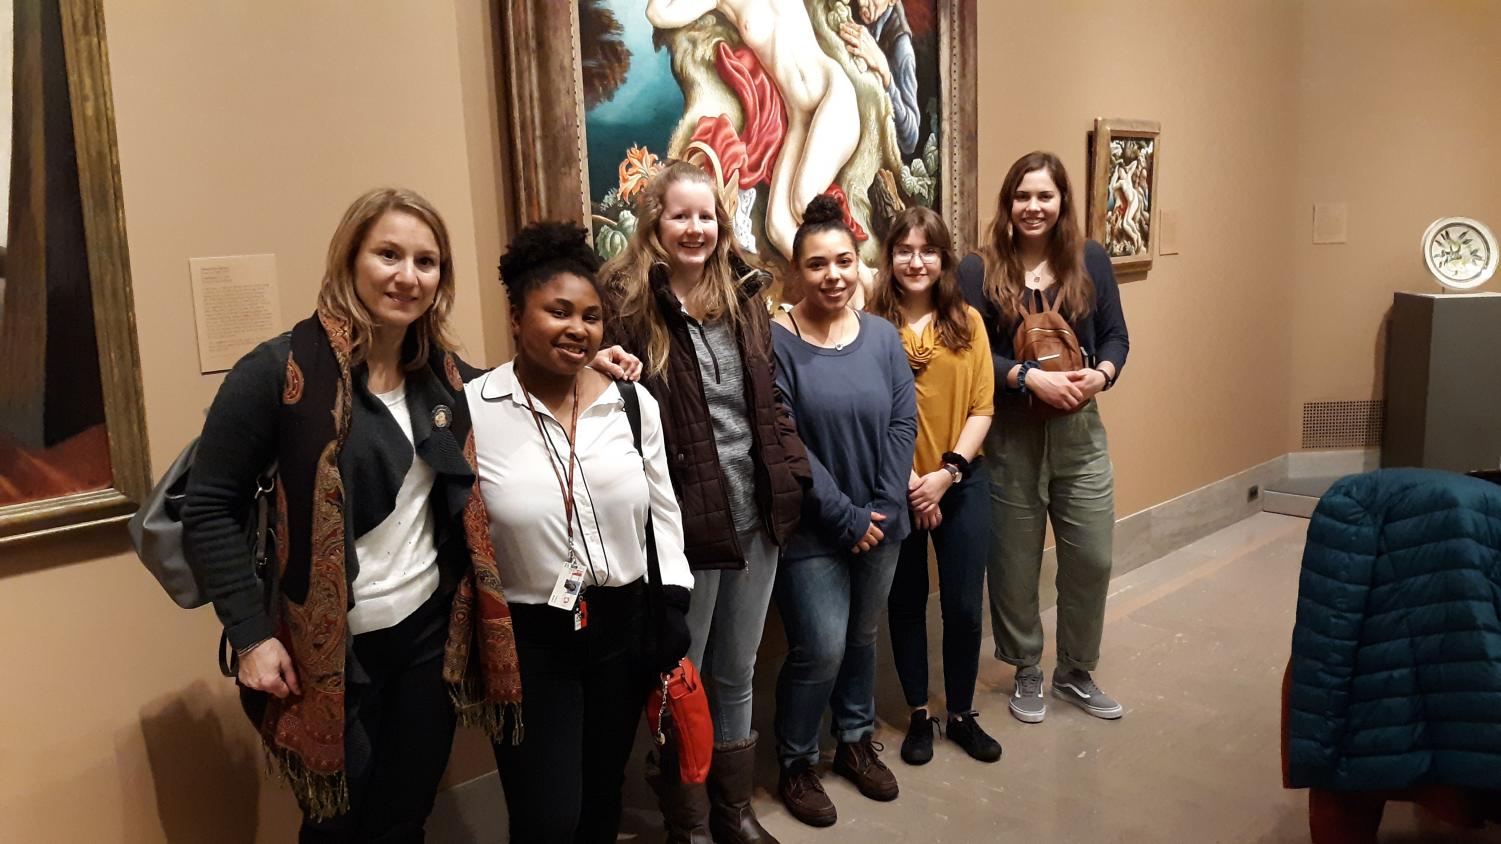 Silvia Byer, Ph.D., Leah Winn, Savannah Oesterle, Breanna Dworak, Steaphanie Betancourt and Alissa Flint visited the Nelson-Atkins Museum of Art in KC.